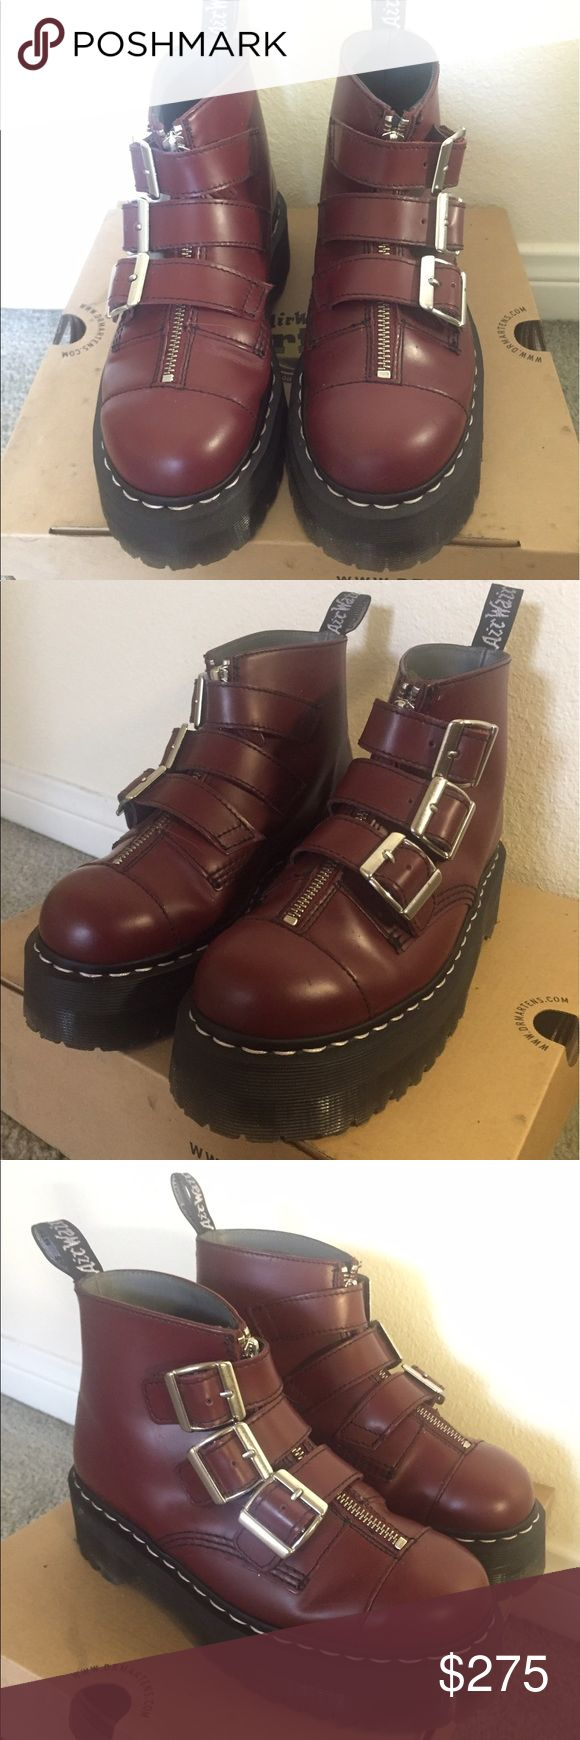 Dr Martens X Agyness Deyn Aggy strap cherry red Excellent mint condition only tried on once!  Store in original box!! Size US 7 or UK 5, they Are limited edition! Dr. Martens Shoes Ankle Boots & Booties